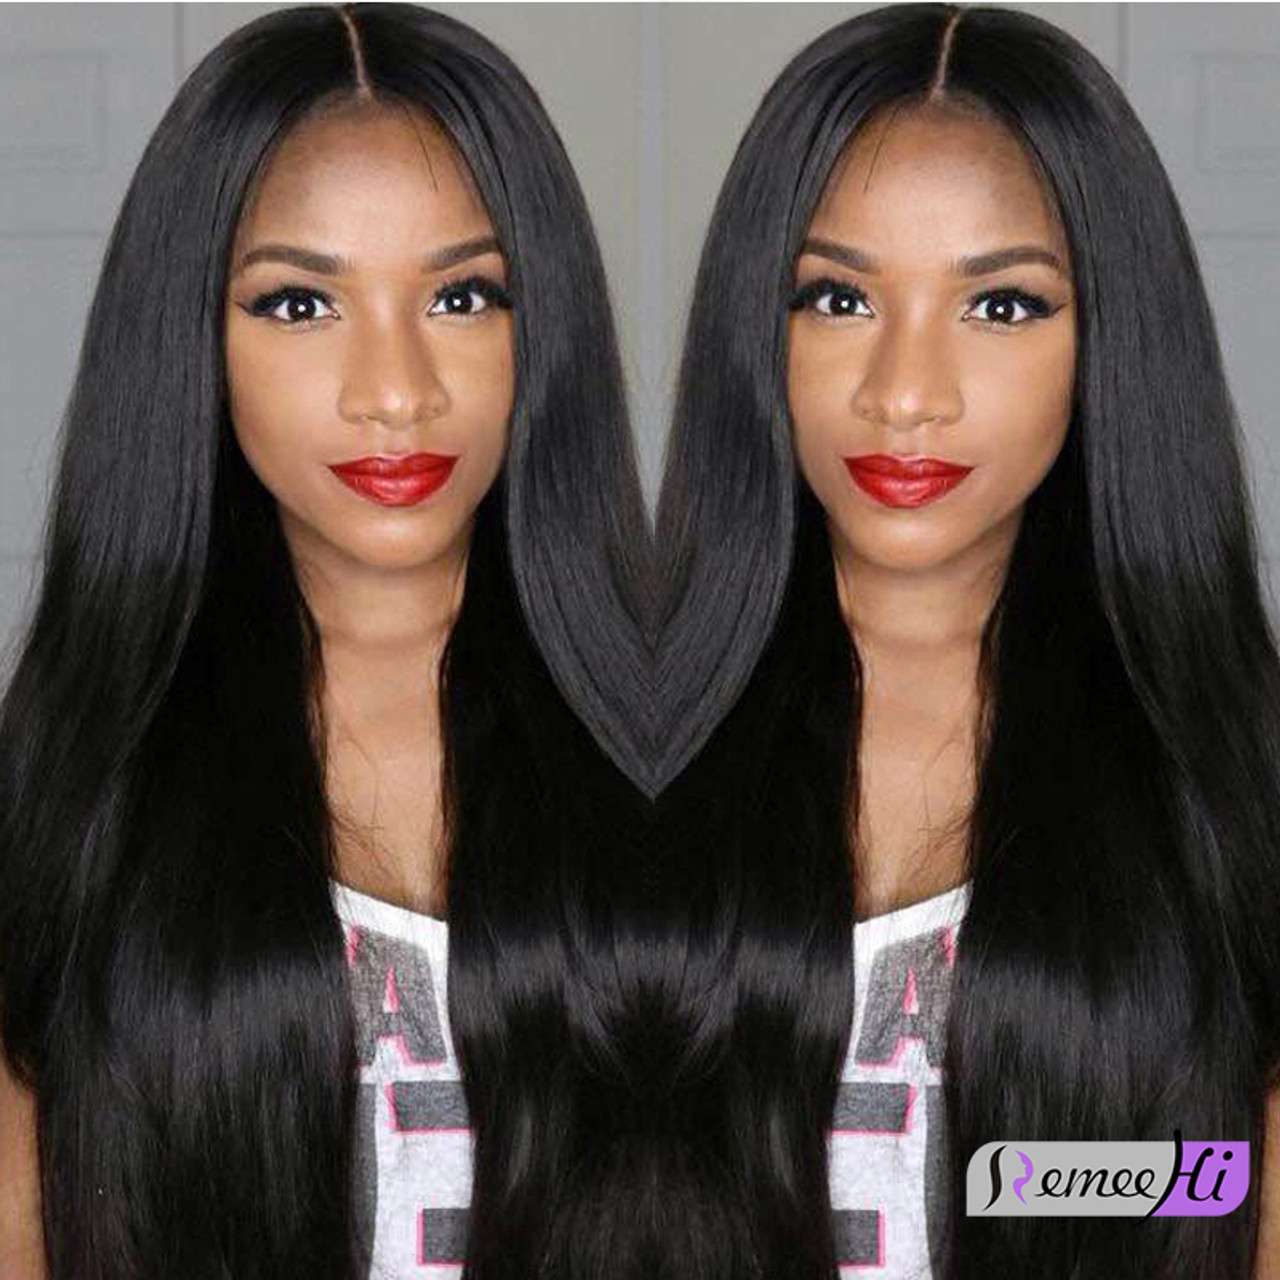 Remeehi Brazilian Virgin Lace Front Human